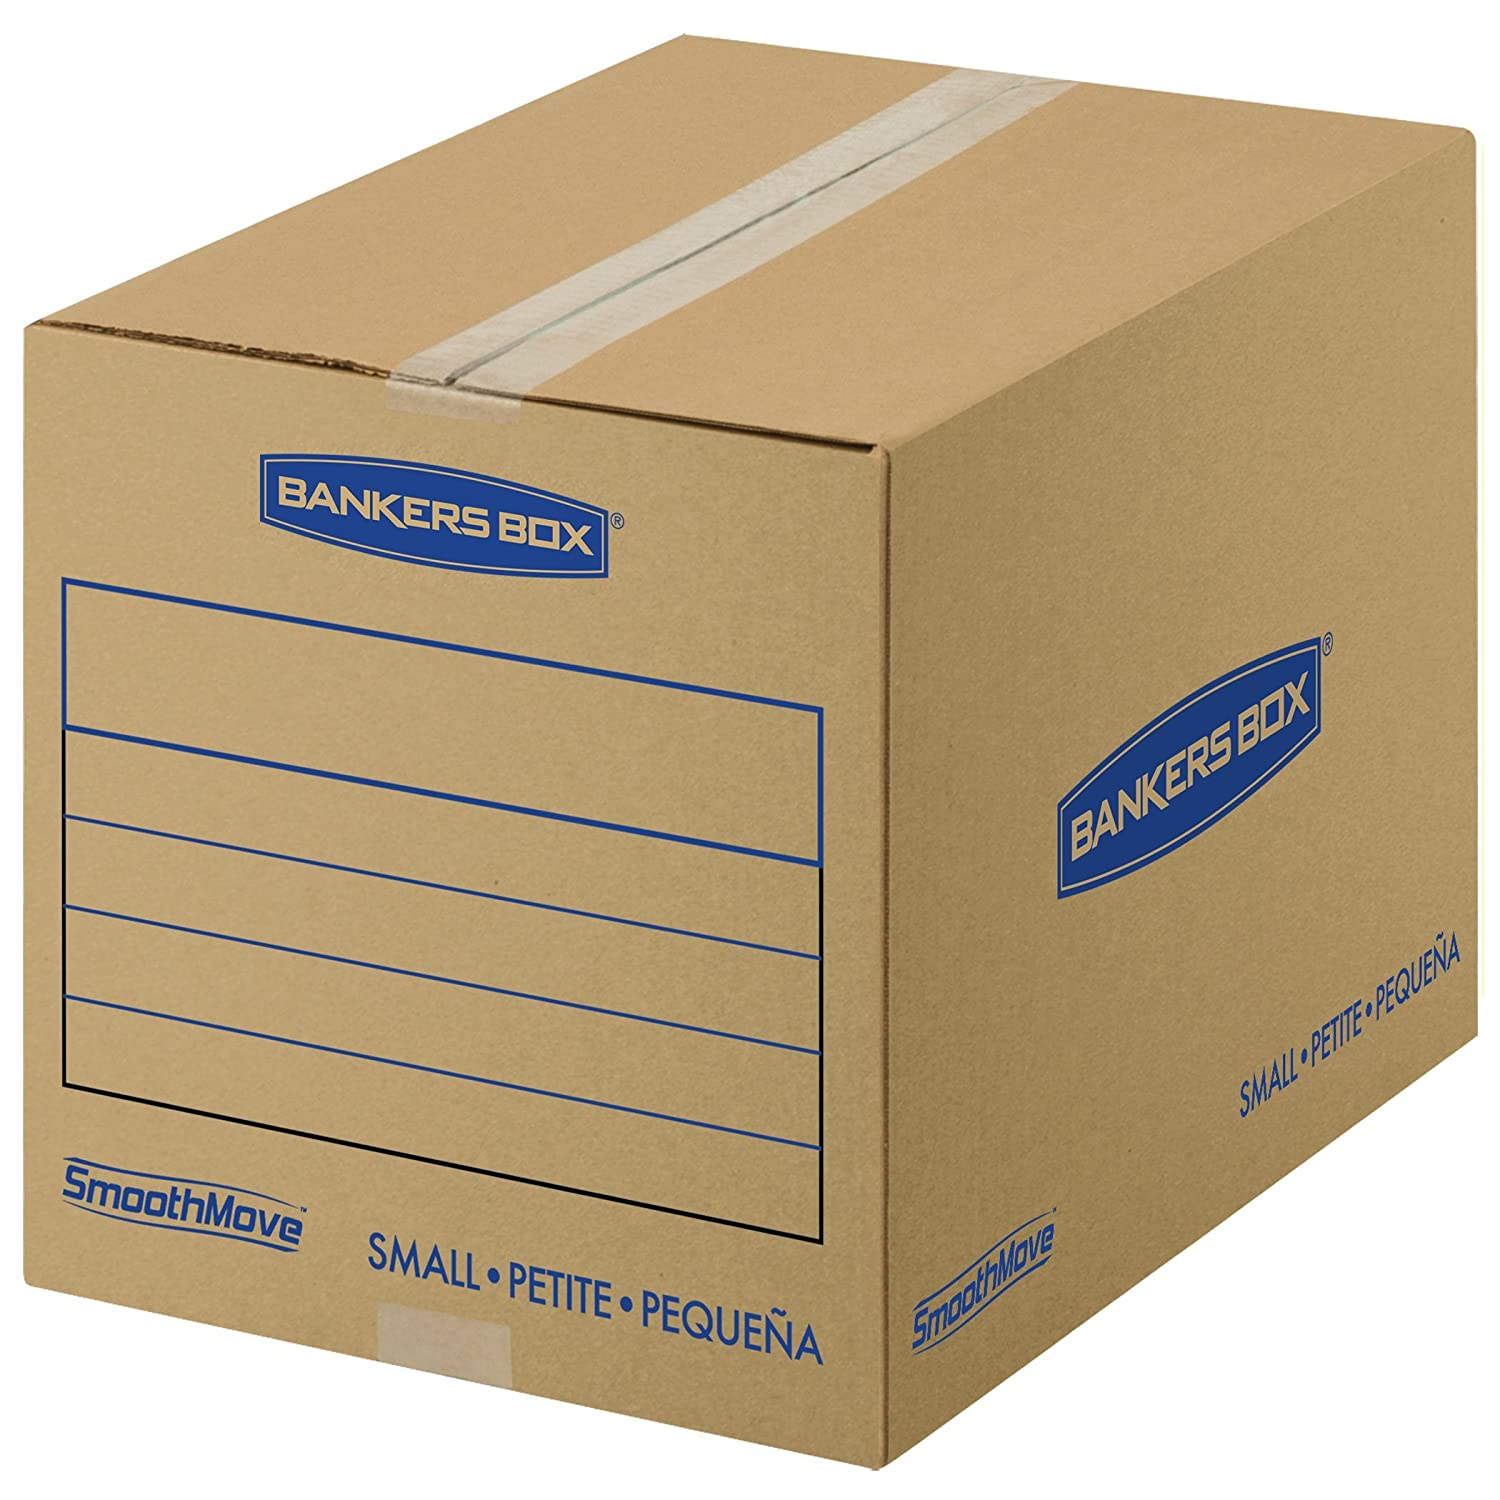 Bankers Box SmoothMove Basic Moving Boxes, Medium, 18 x 18 x 16 Inches, 10-Pack (7713902) Fellowes